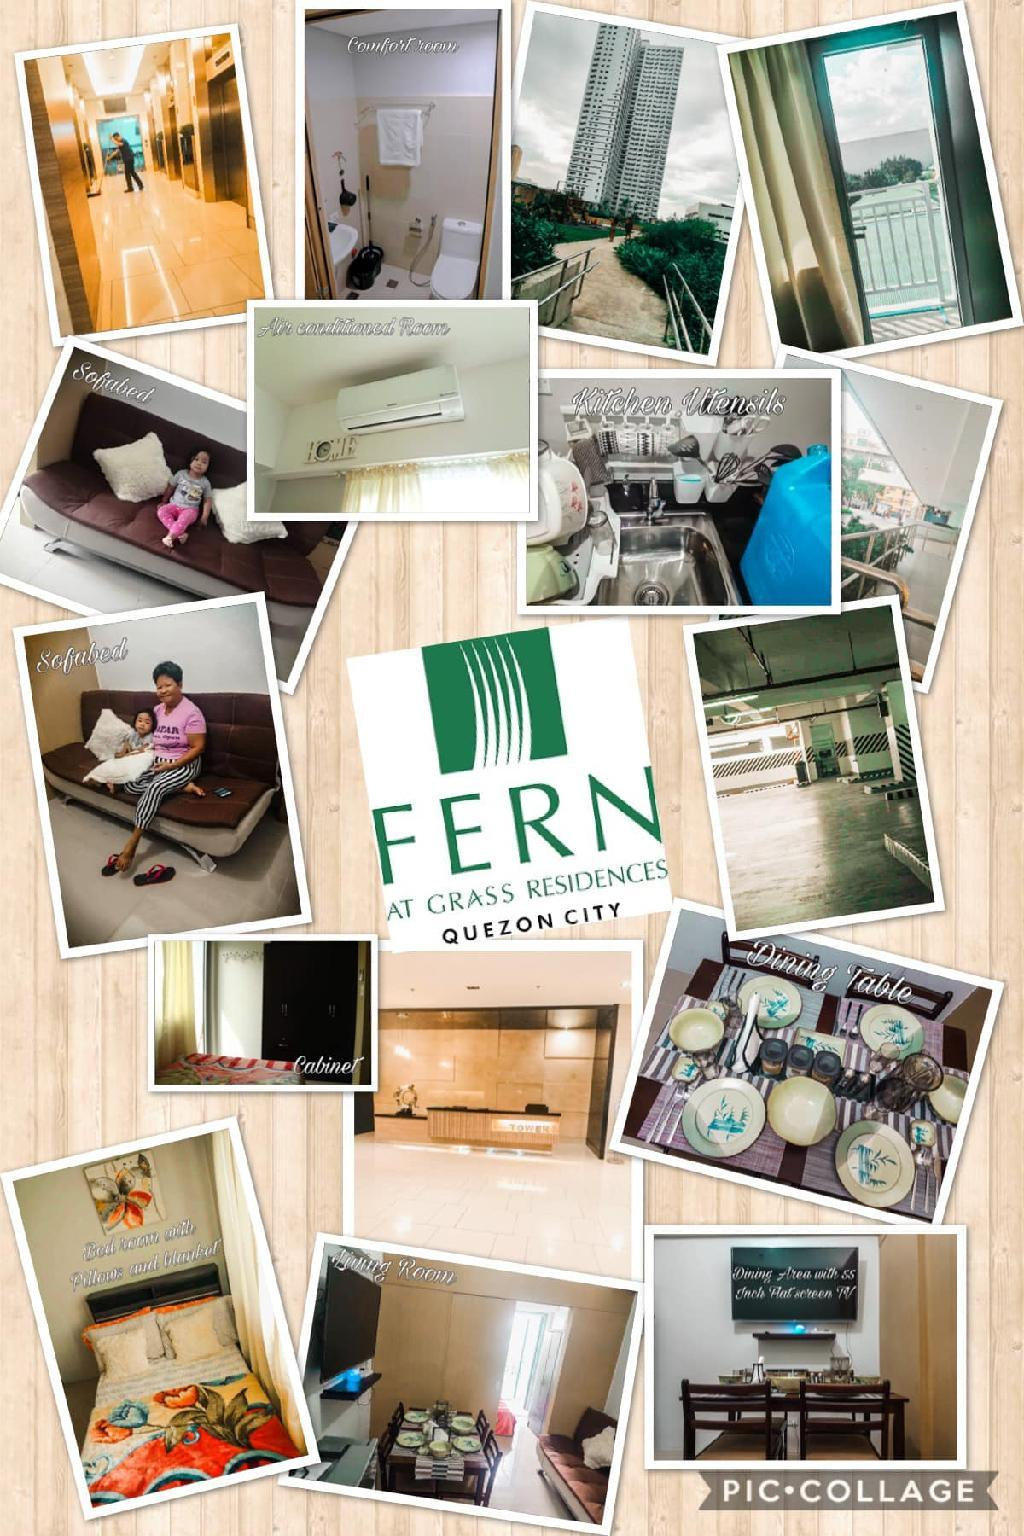 A-Claude's Crib  at FERN Grass Residences